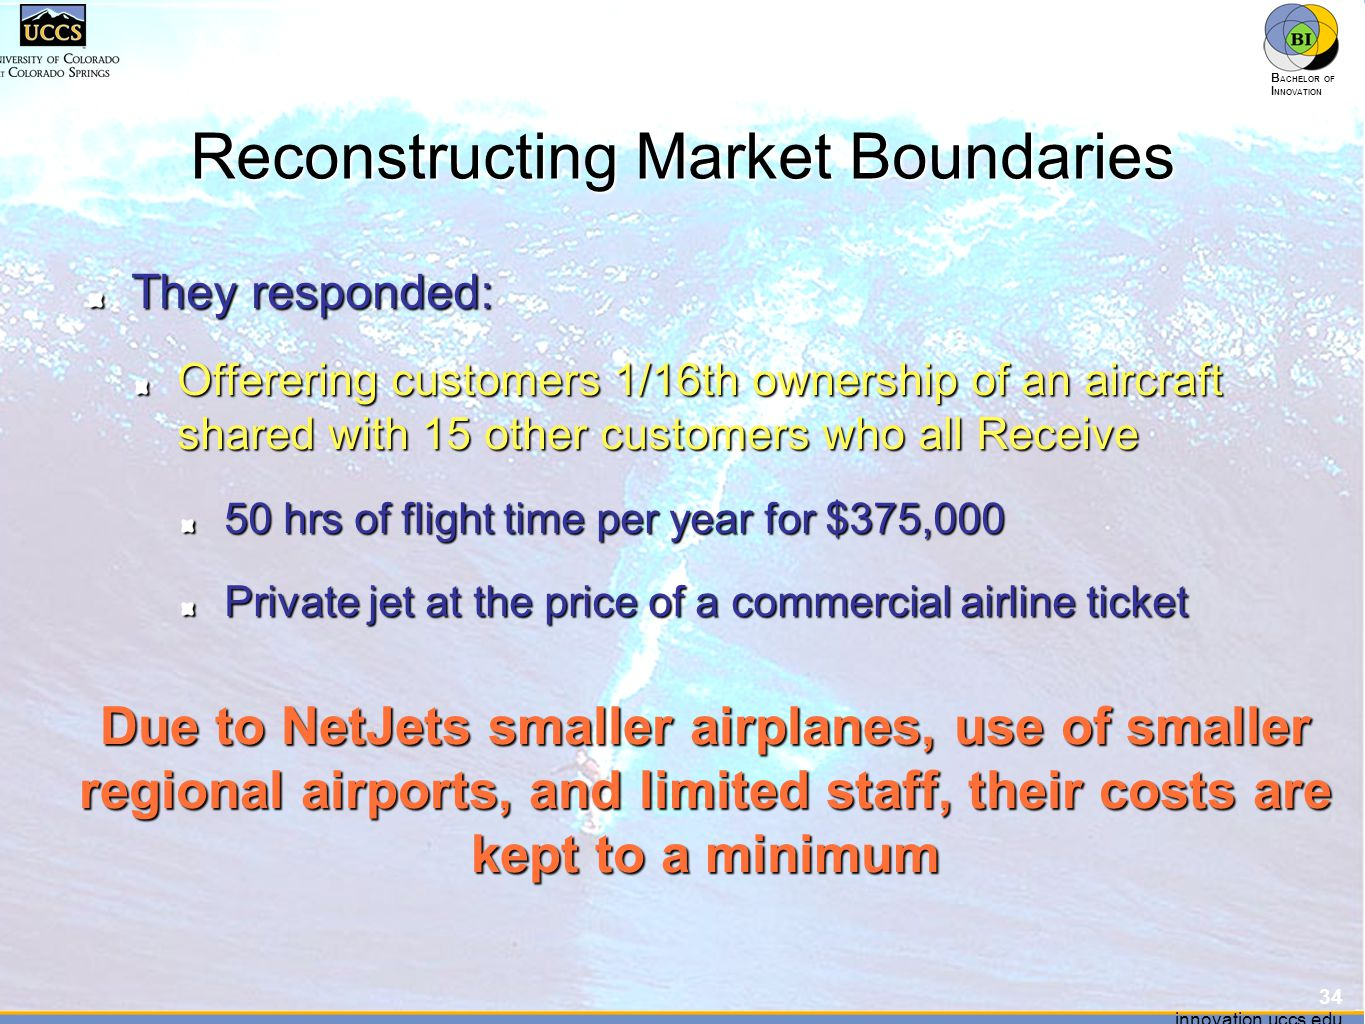 innovation.uccs.edu B ACHELOR OF I NNOVATION ™ innovation.uccs.edu B ACHELOR OF I NNOVATION ™ Reconstructing Market Boundaries They responded: Offerering customers 1/16th ownership of an aircraft shared with 15 other customers who all Receive 50 hrs of flight time per year for $375,000 Private jet at the price of a commercial airline ticket 34 Due to NetJets smaller airplanes, use of smaller regional airports, and limited staff, their costs are kept to a minimum